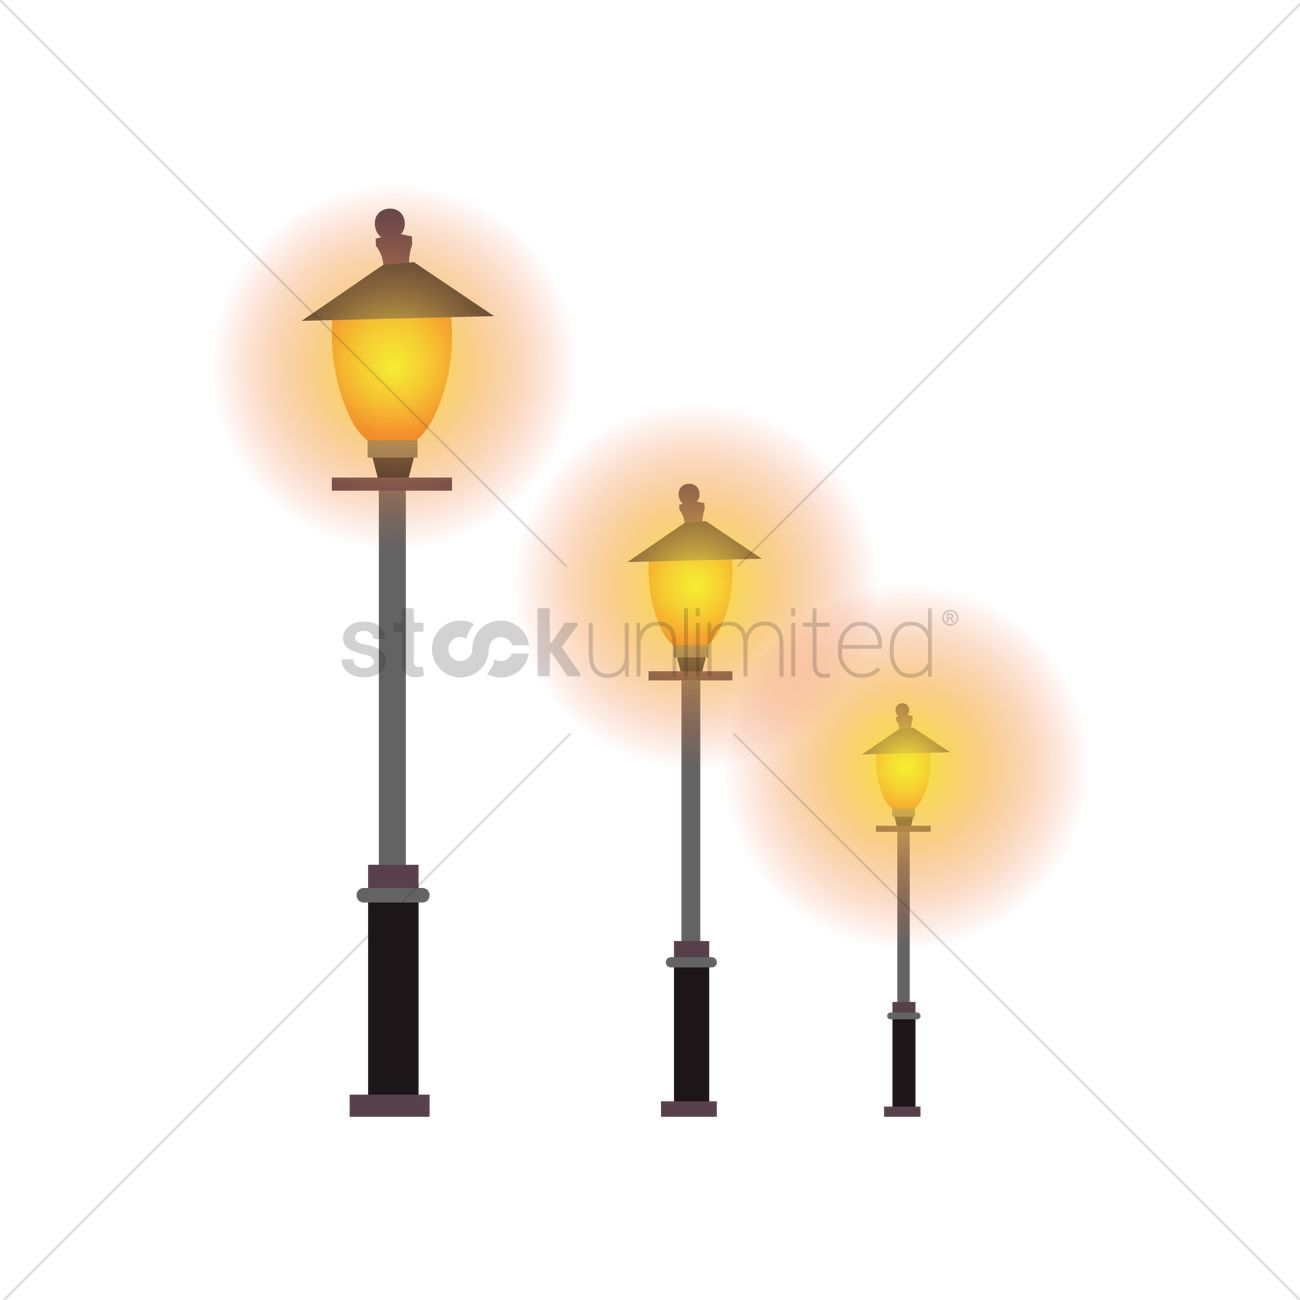 Lamp post Vector Image - 2015721 | StockUnlimited for Street Lamp Post Vector  35fsj